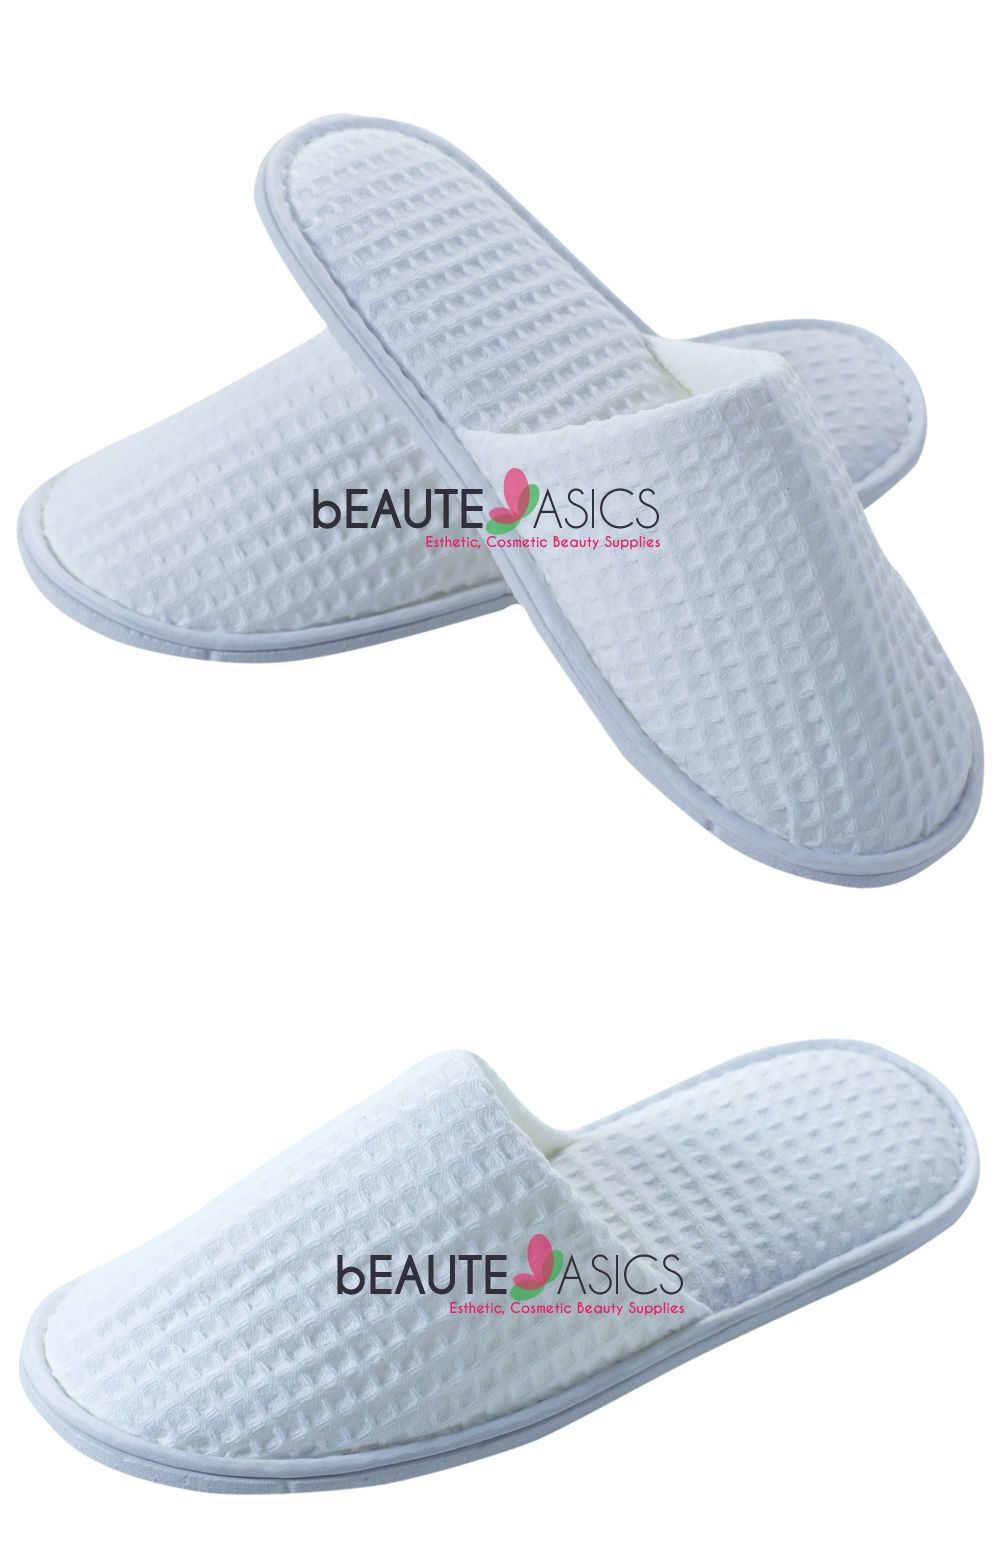 5c649be9b1 Slippers 163550  50 Pairs Cotton Waffle Weave Slippers Spa Wedding Travel  Party -  BUY